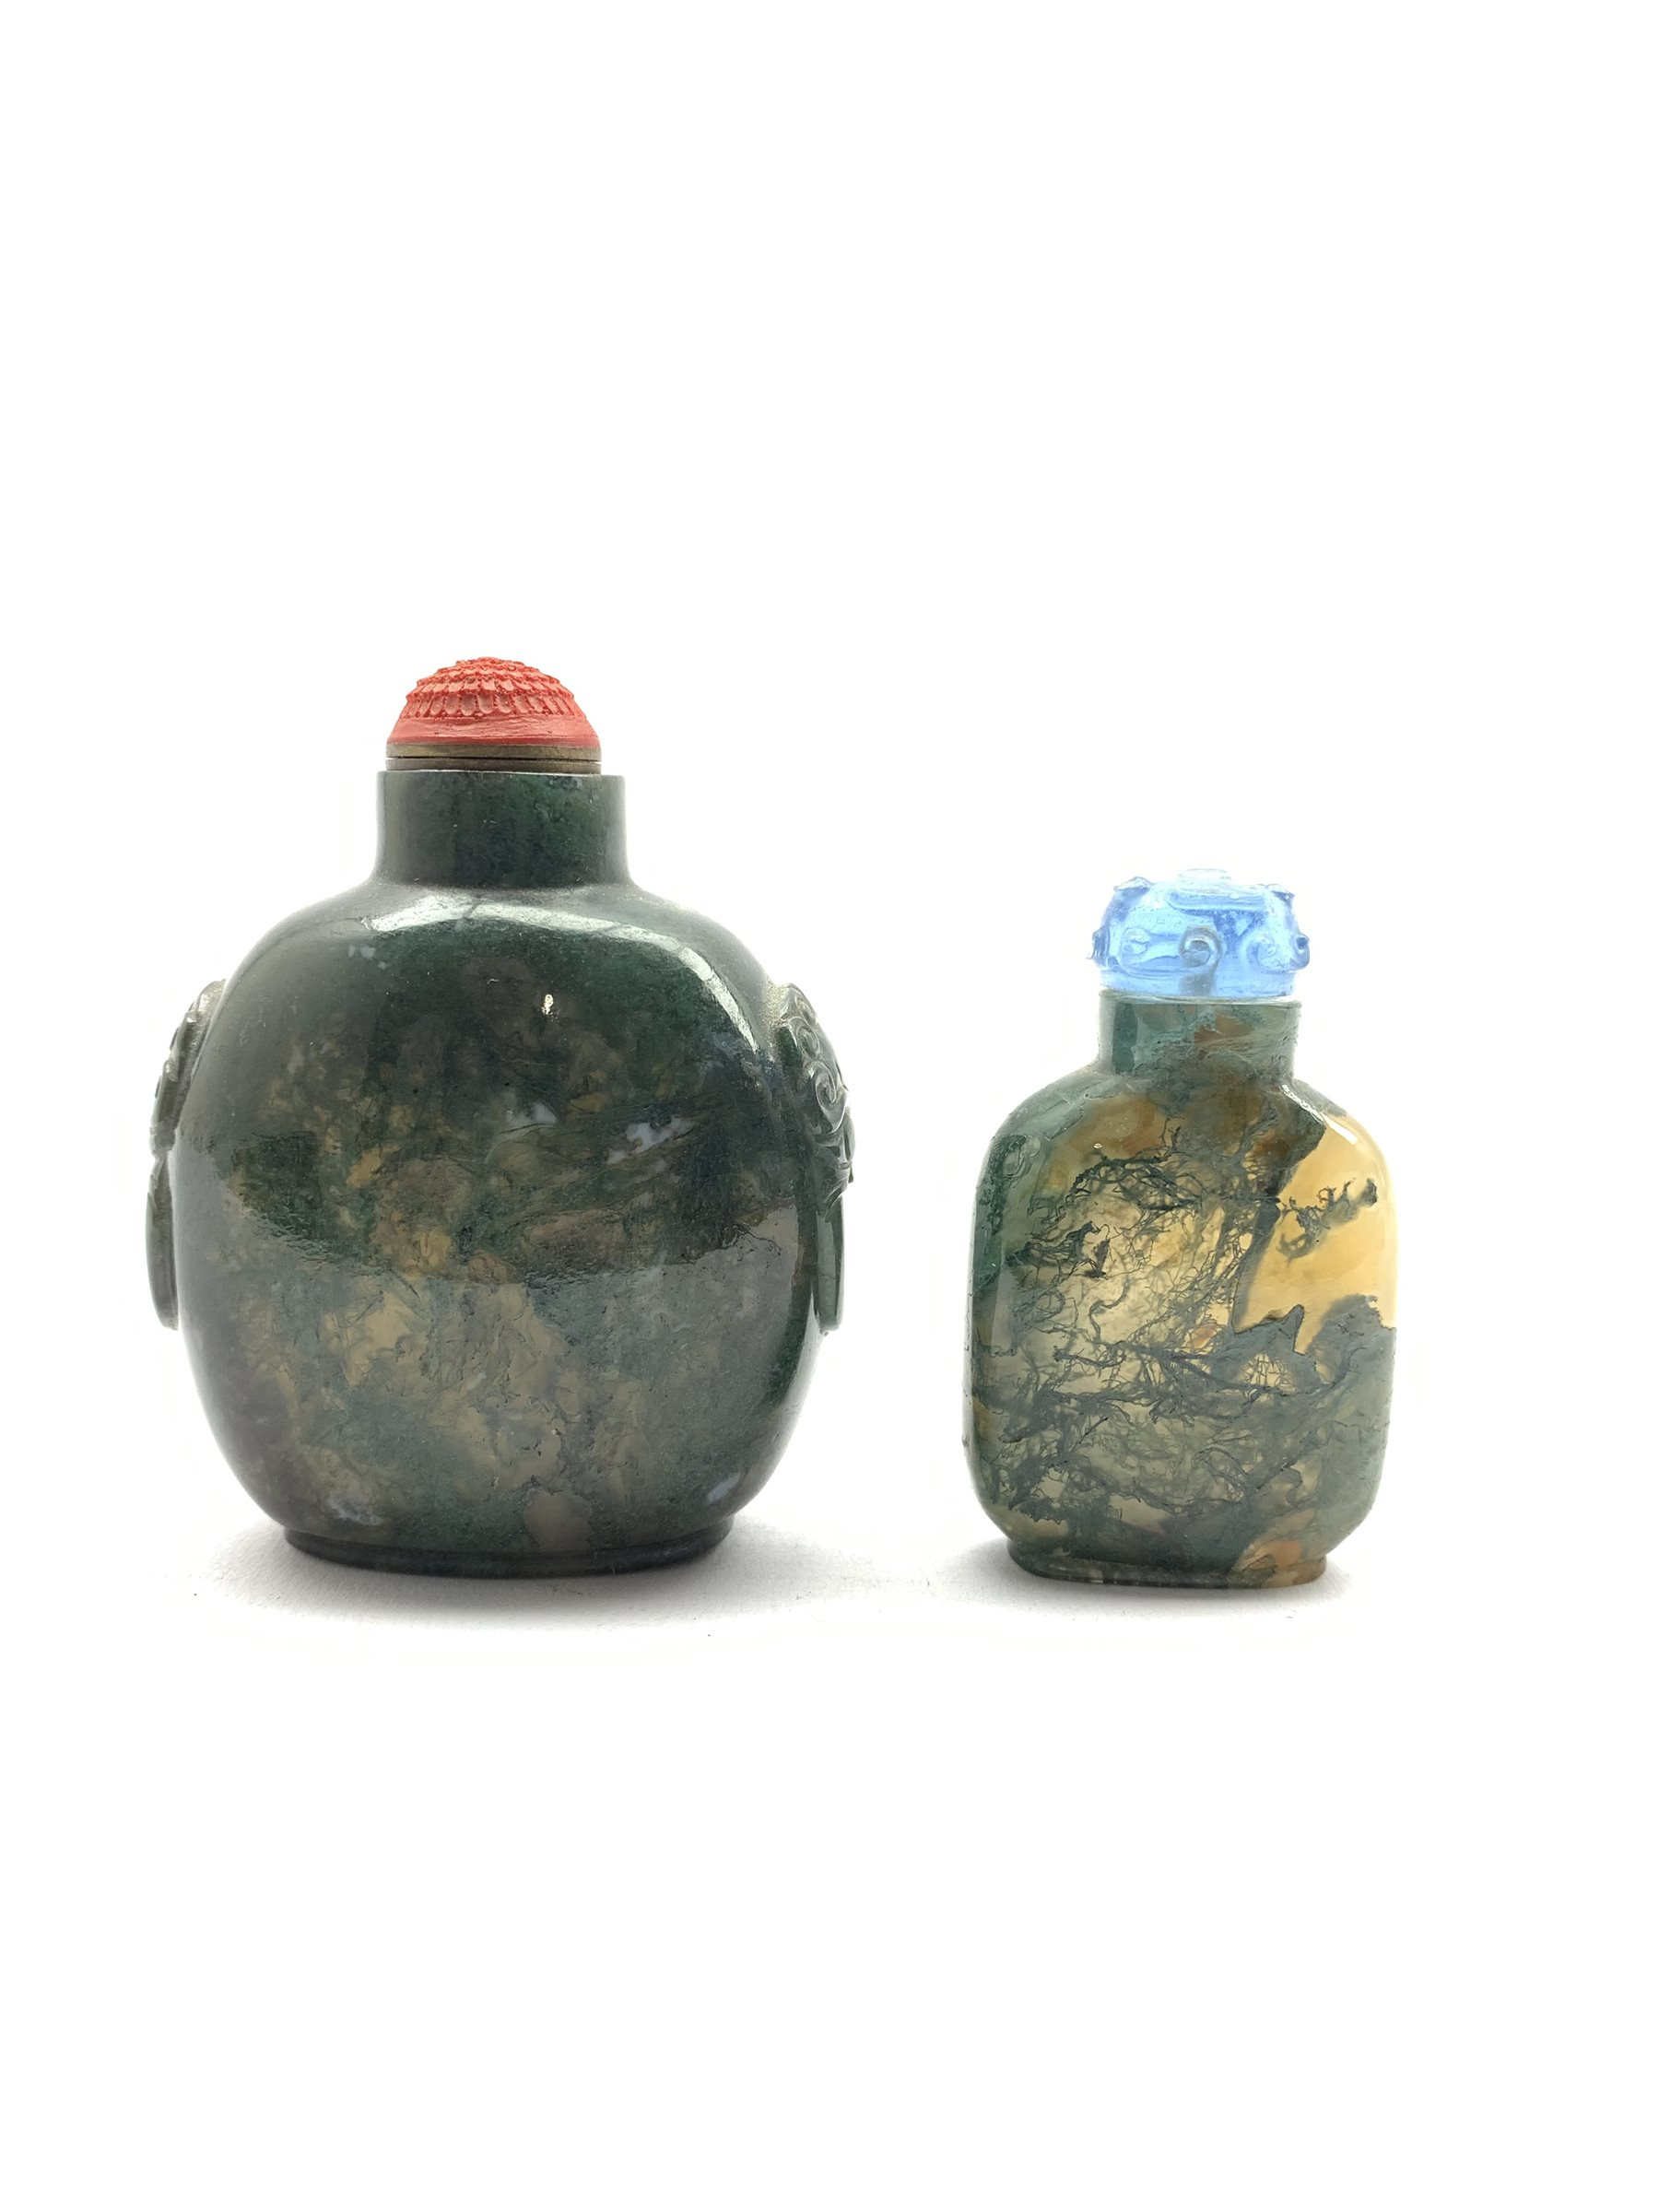 Chinese moss agate style snuff bottle with ring handles and cinnabar stopper, H8cm together with a s - Image 3 of 7